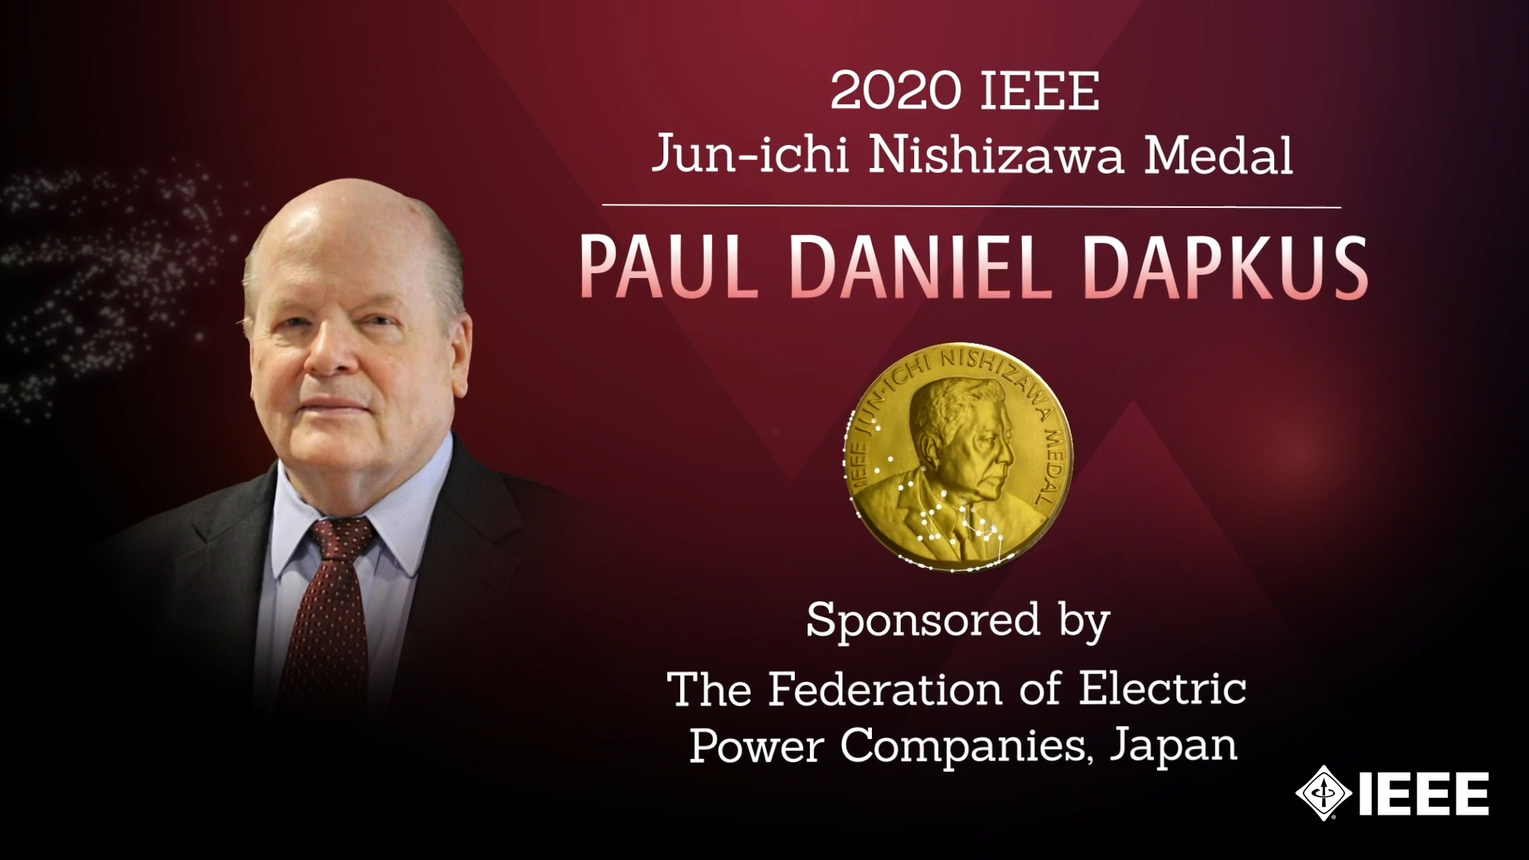 Honors 2020: Paul Daniel Dapkus Wins the Jun-ichi Nishizawa Medal